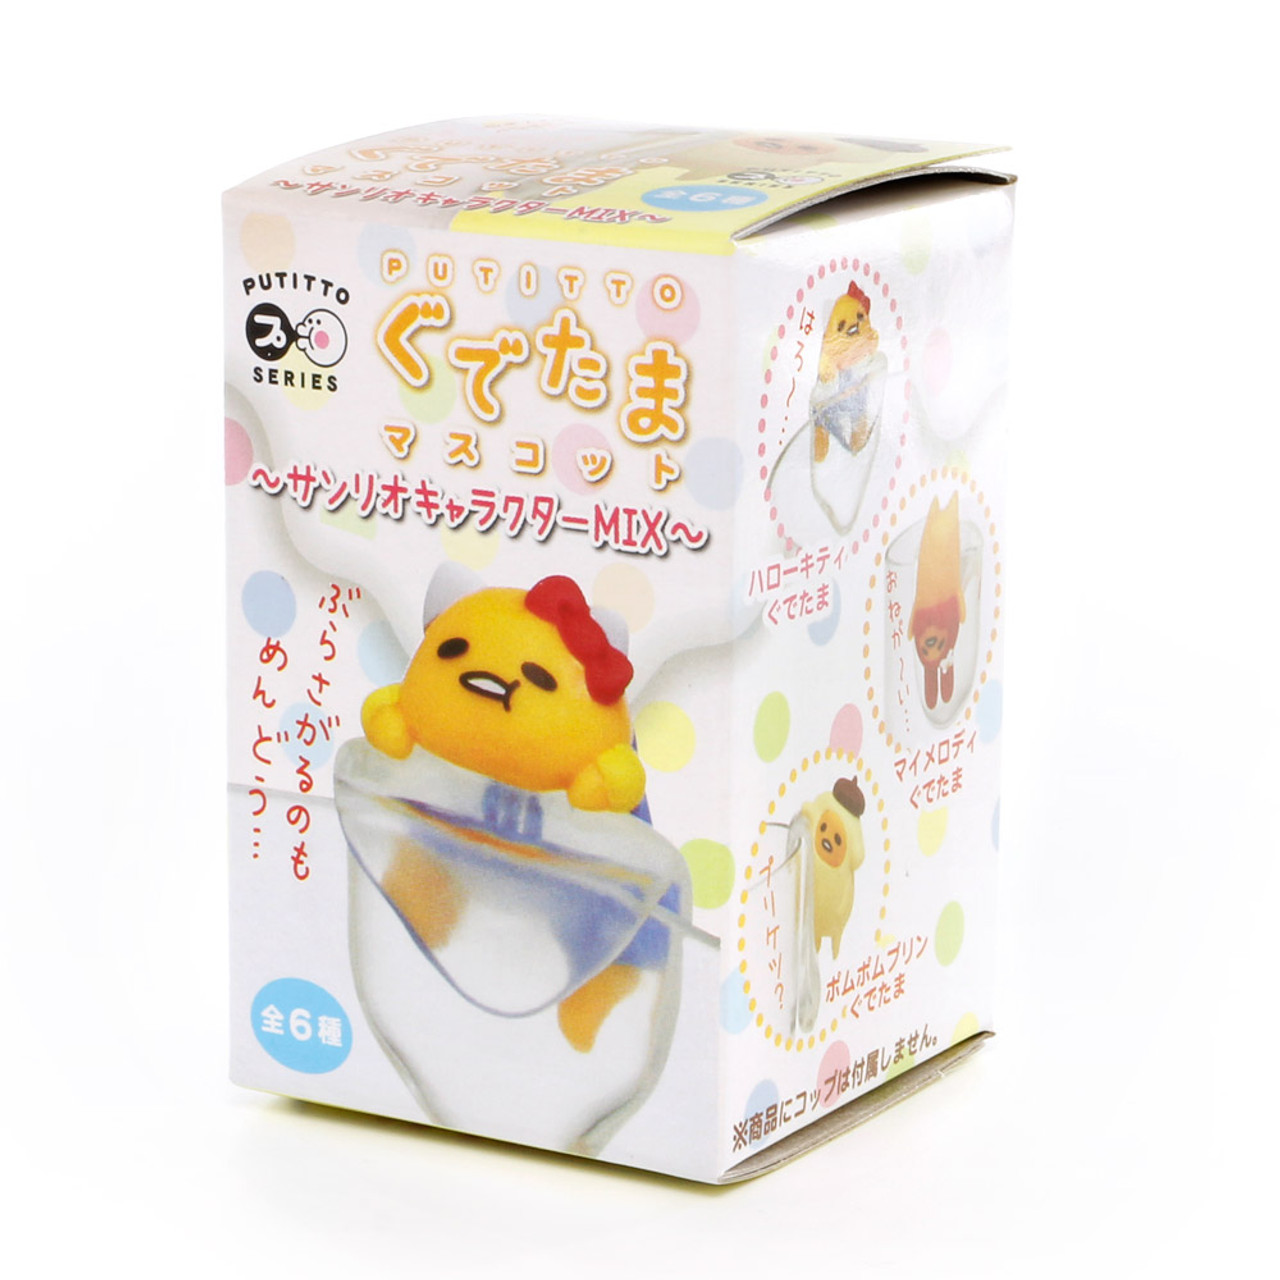 Gudetama Mix Sanrio Characters Blind Box Figure ( Front View )